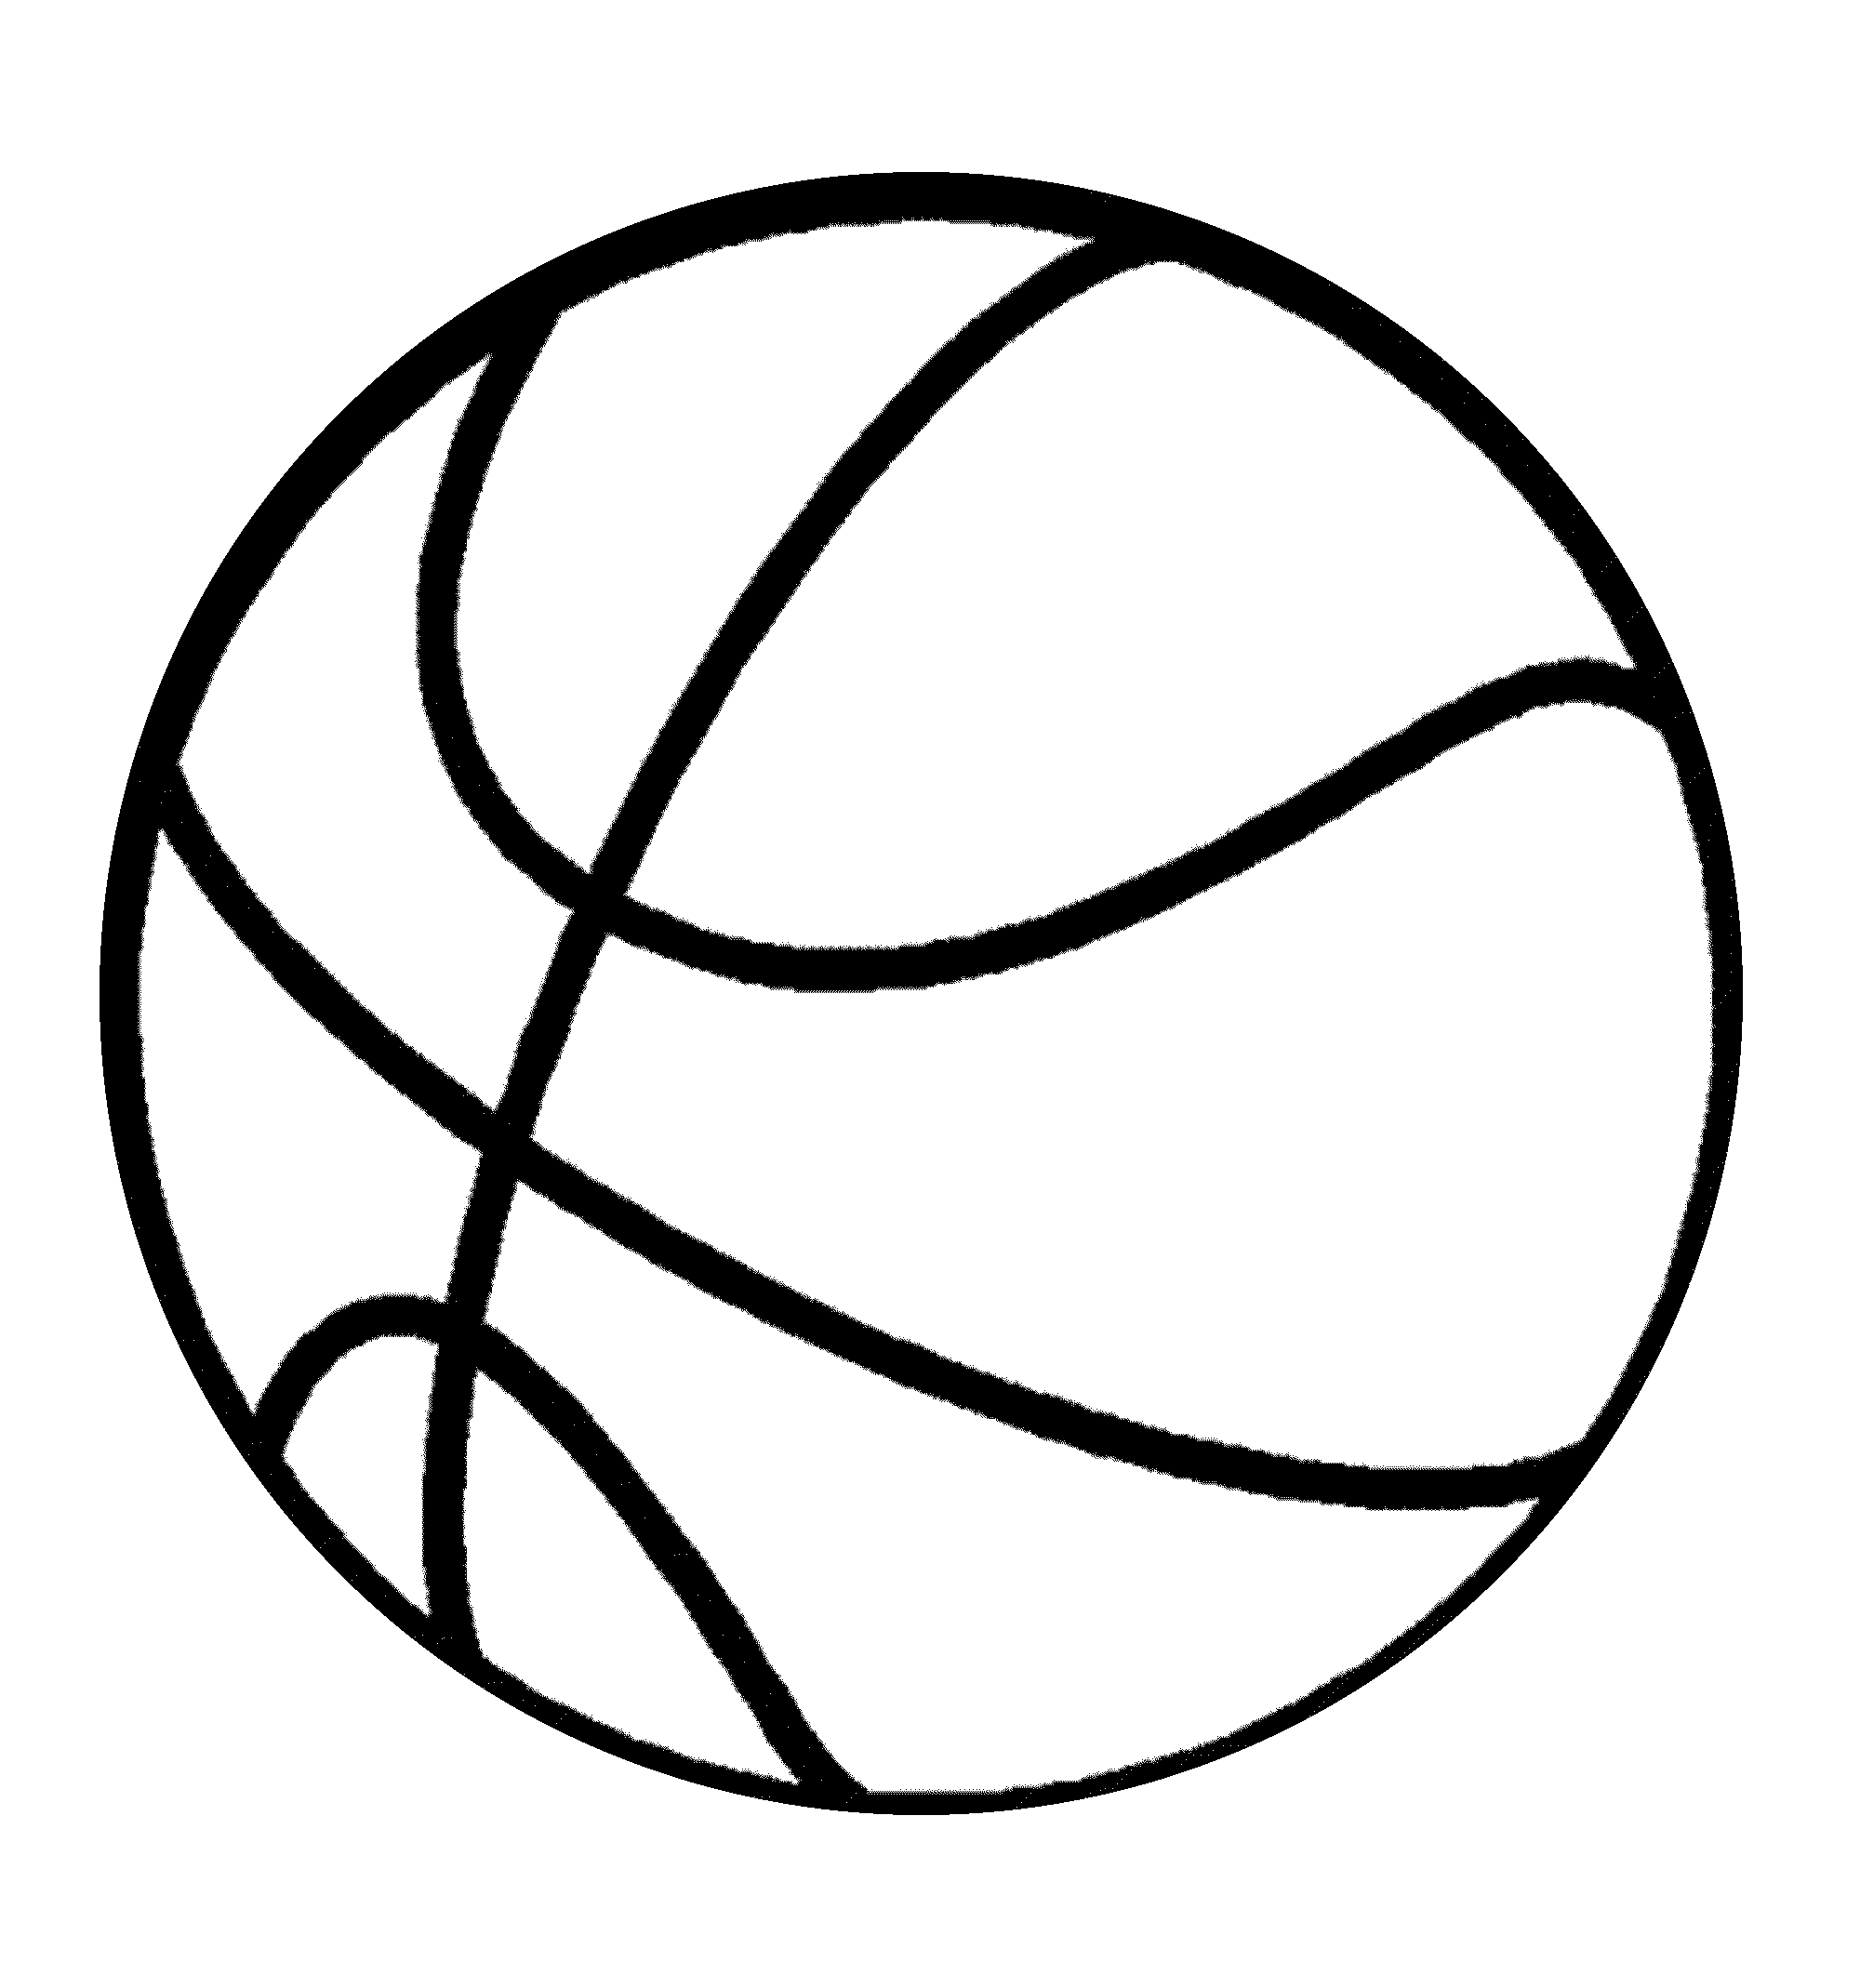 colouring pages of ball sports coloring pages getcoloringpagescom of ball colouring pages